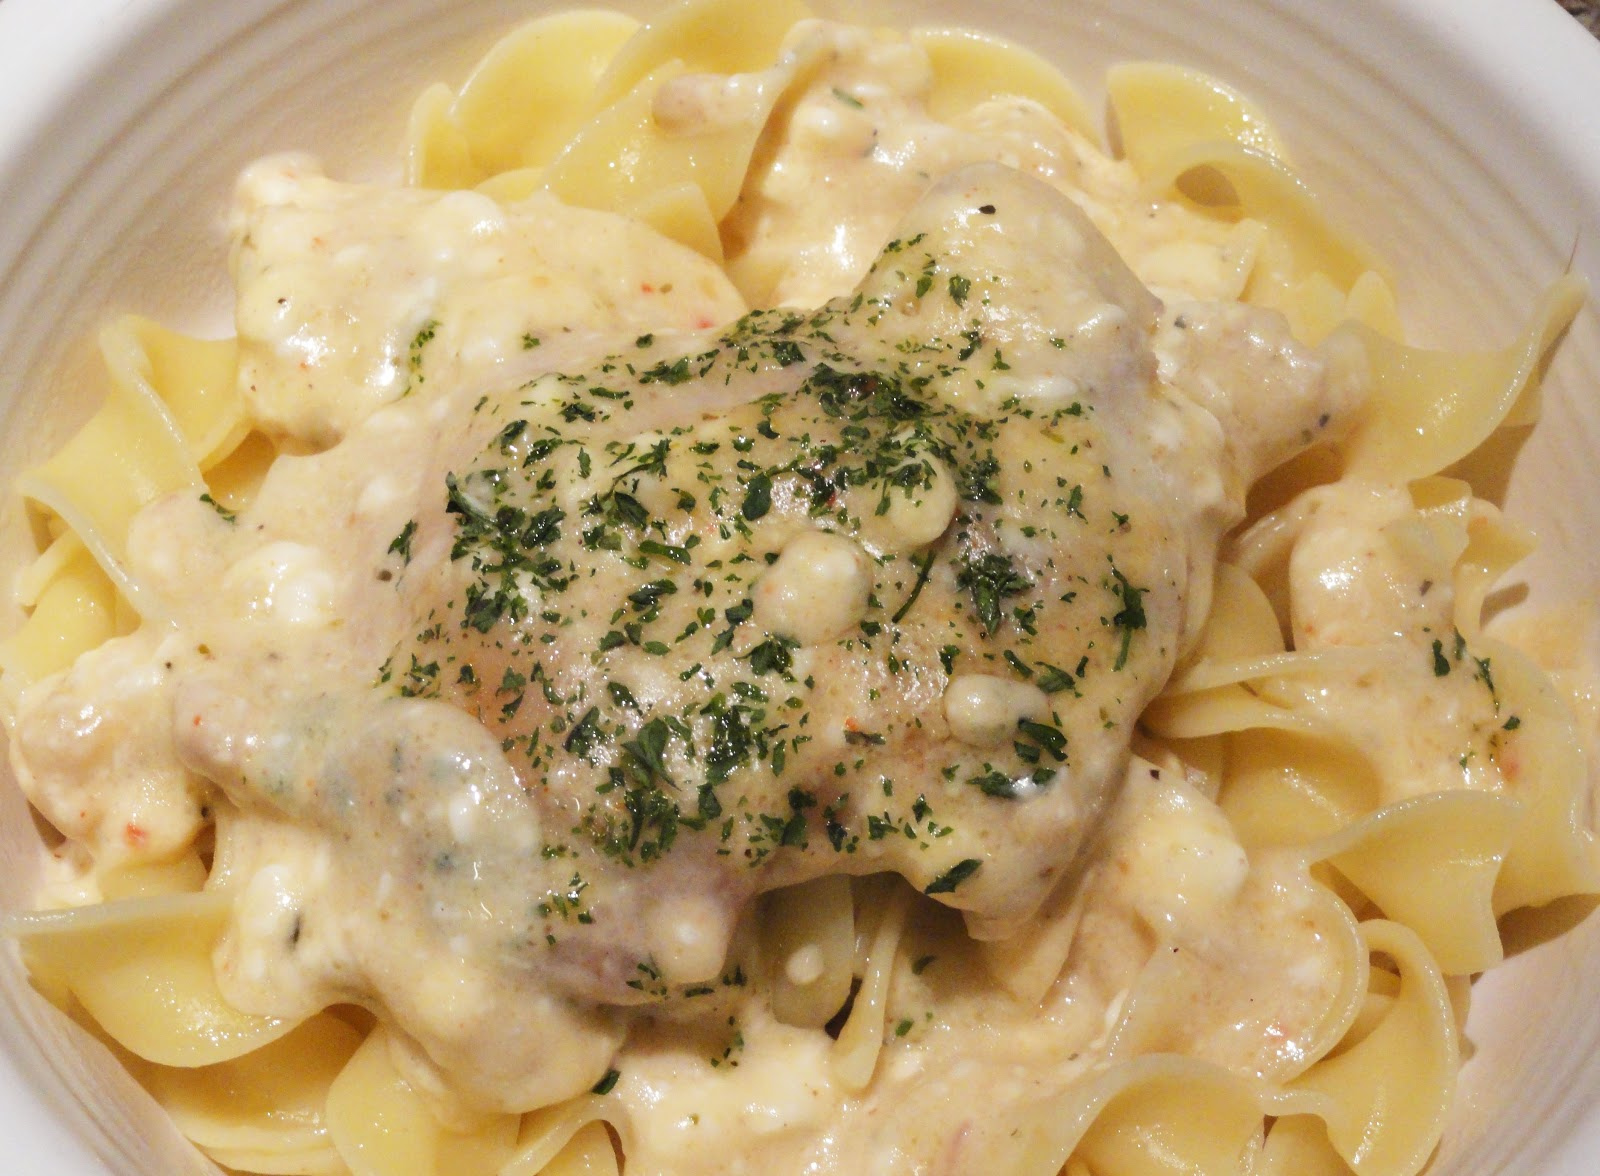 Angie's BIG Love of Food: Crockpot Chicken Stroganoff